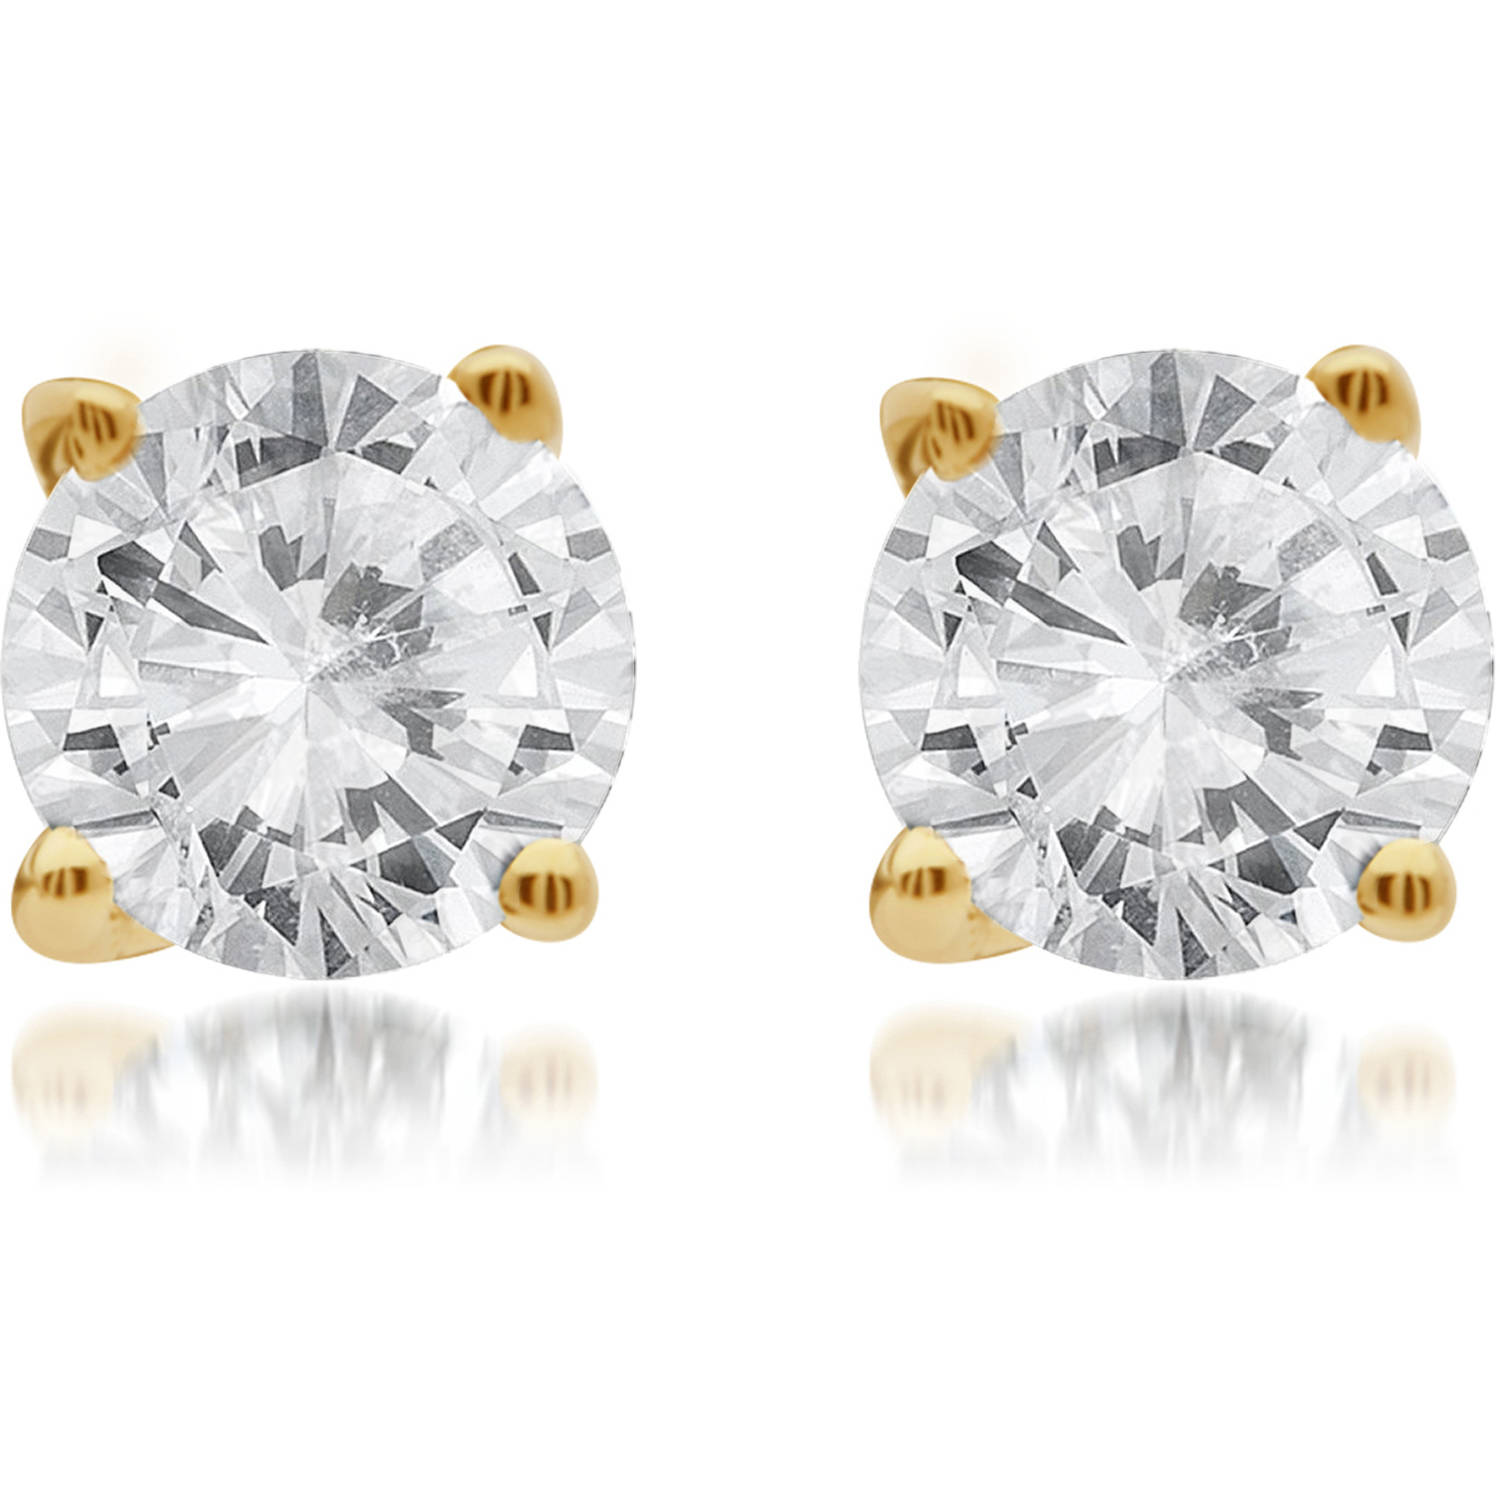 1/4 Carat T.W. Round White Diamond 14kt Yellow Gold Stud Earrings with Gift Box, IGL Certified